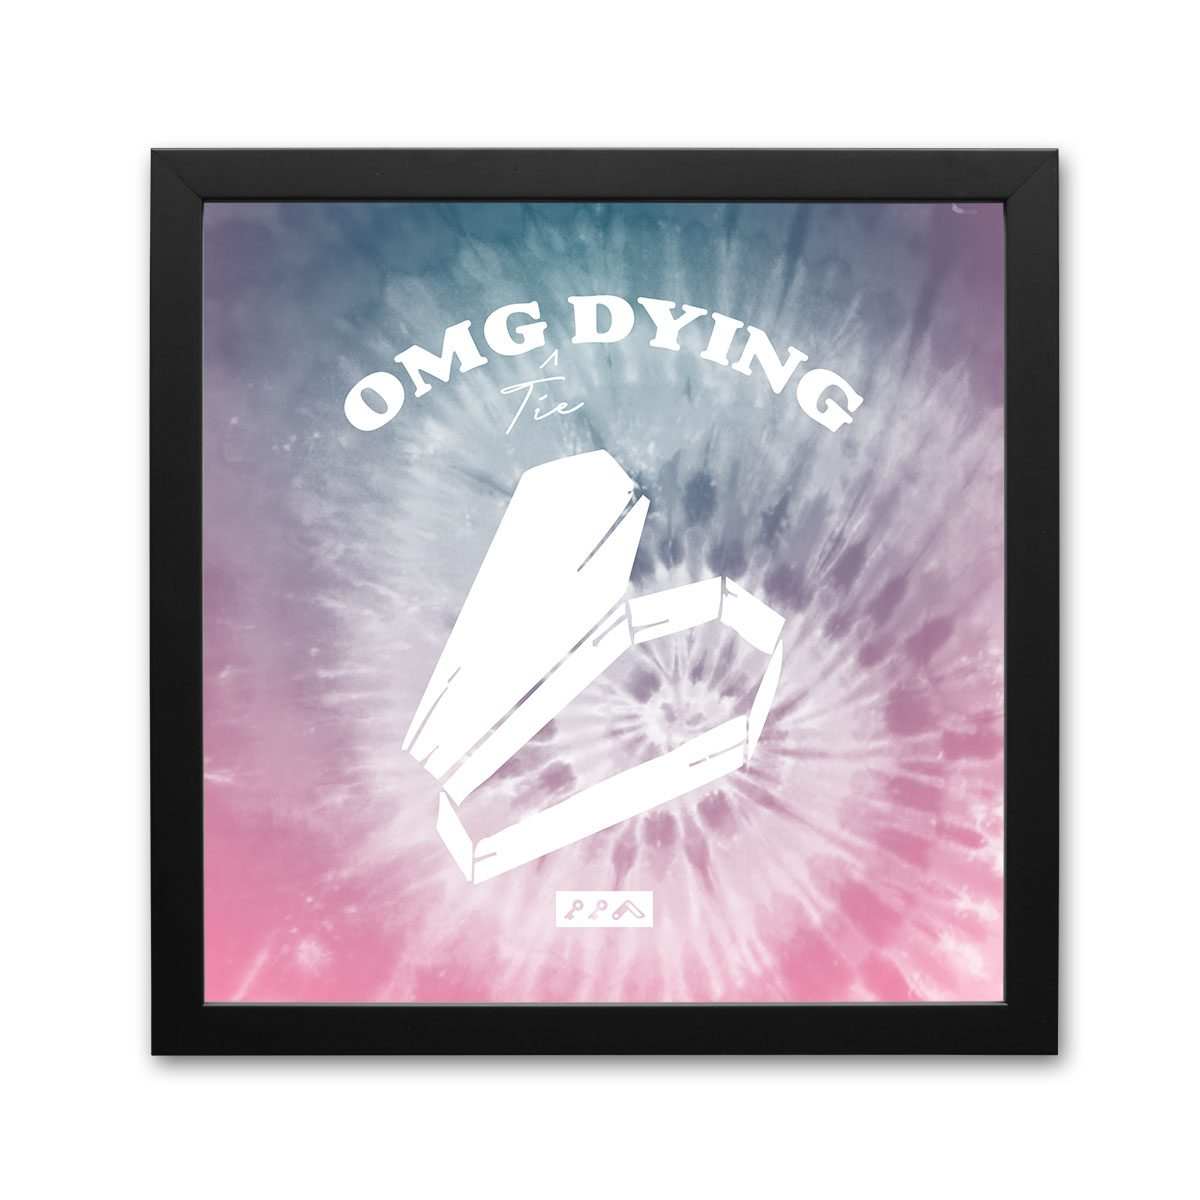 OMG DYING funny quote tie-dye framed prints by kikicutt